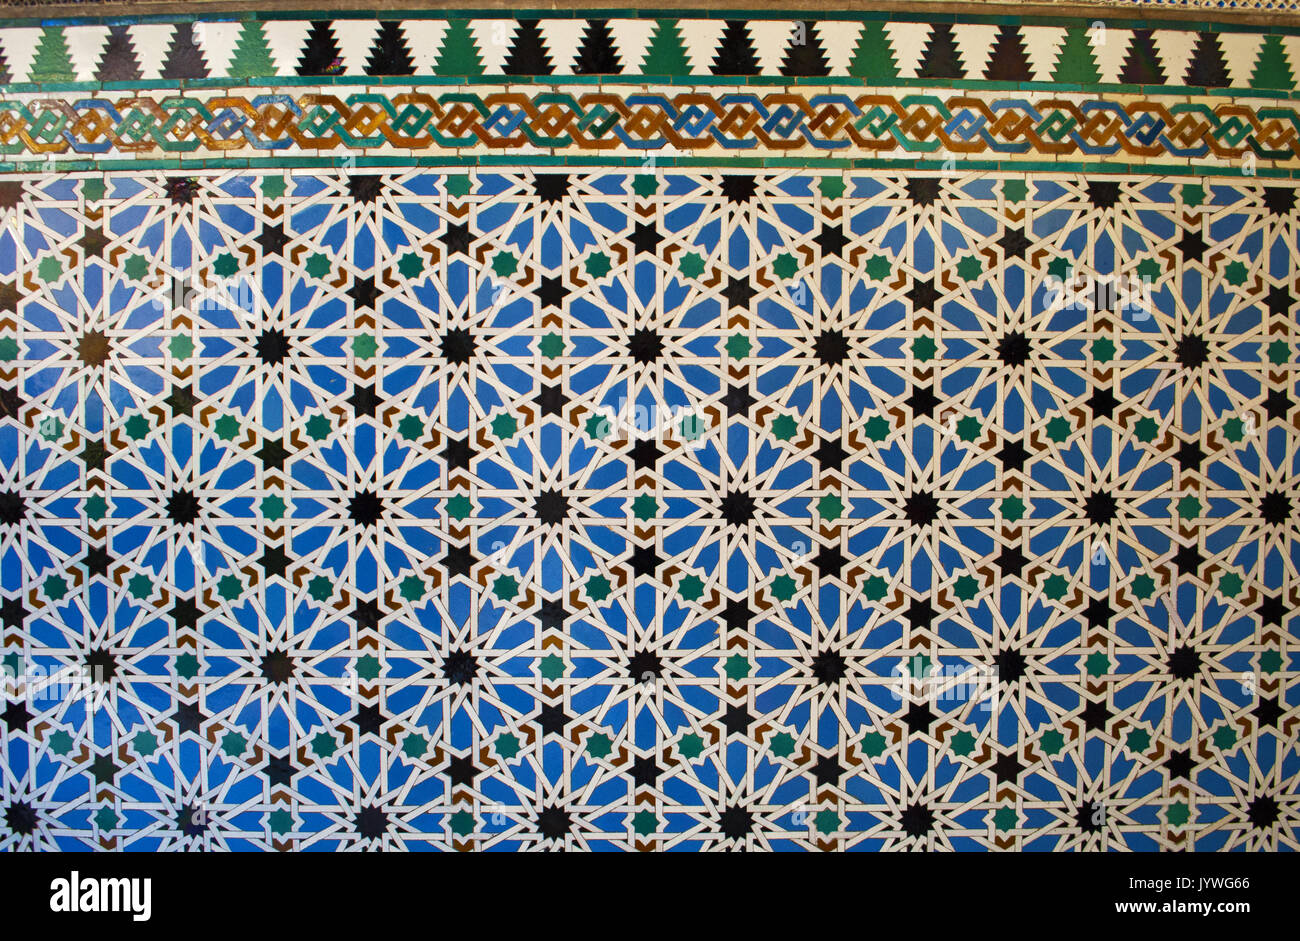 Spain decorated walls of the cloister of mudejar palace of pedro spain decorated walls of the cloister of mudejar palace of pedro i designed in moorish style for a christian ruler part of the alcazar of seville amipublicfo Image collections